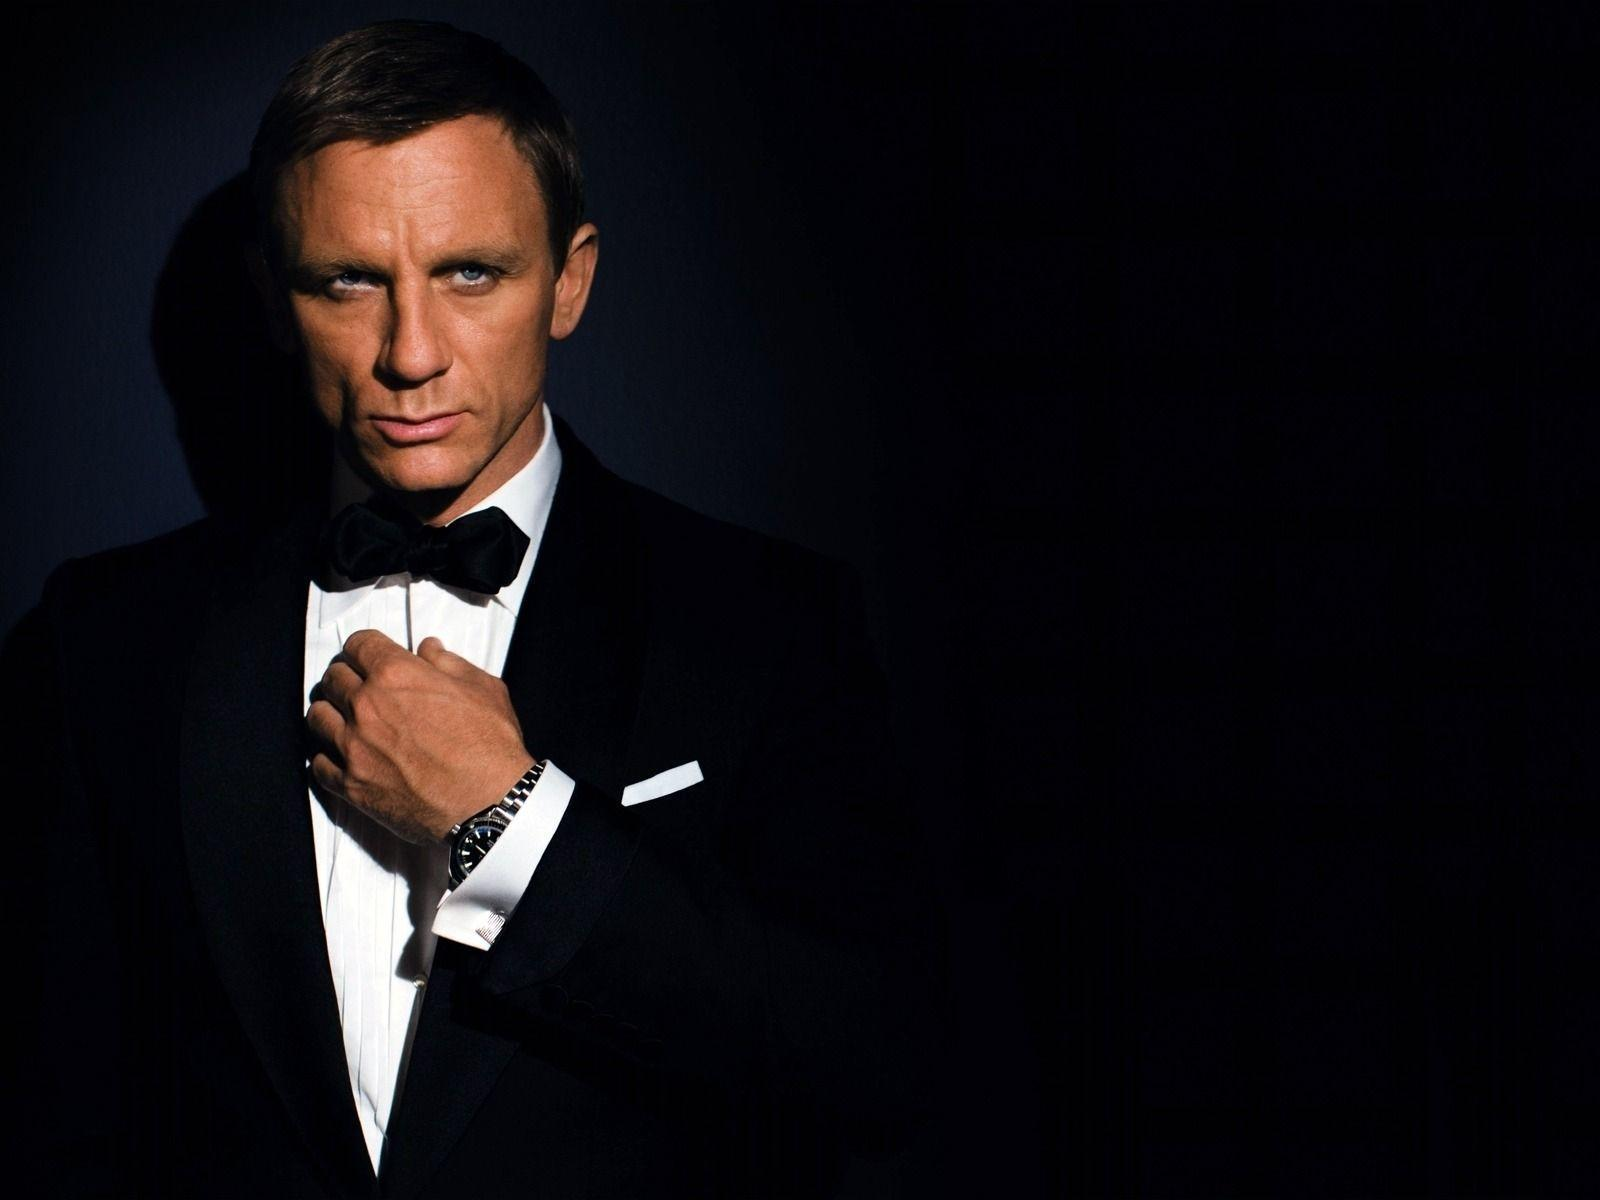 james bond daniel craig wallpapers - wallpaper cave